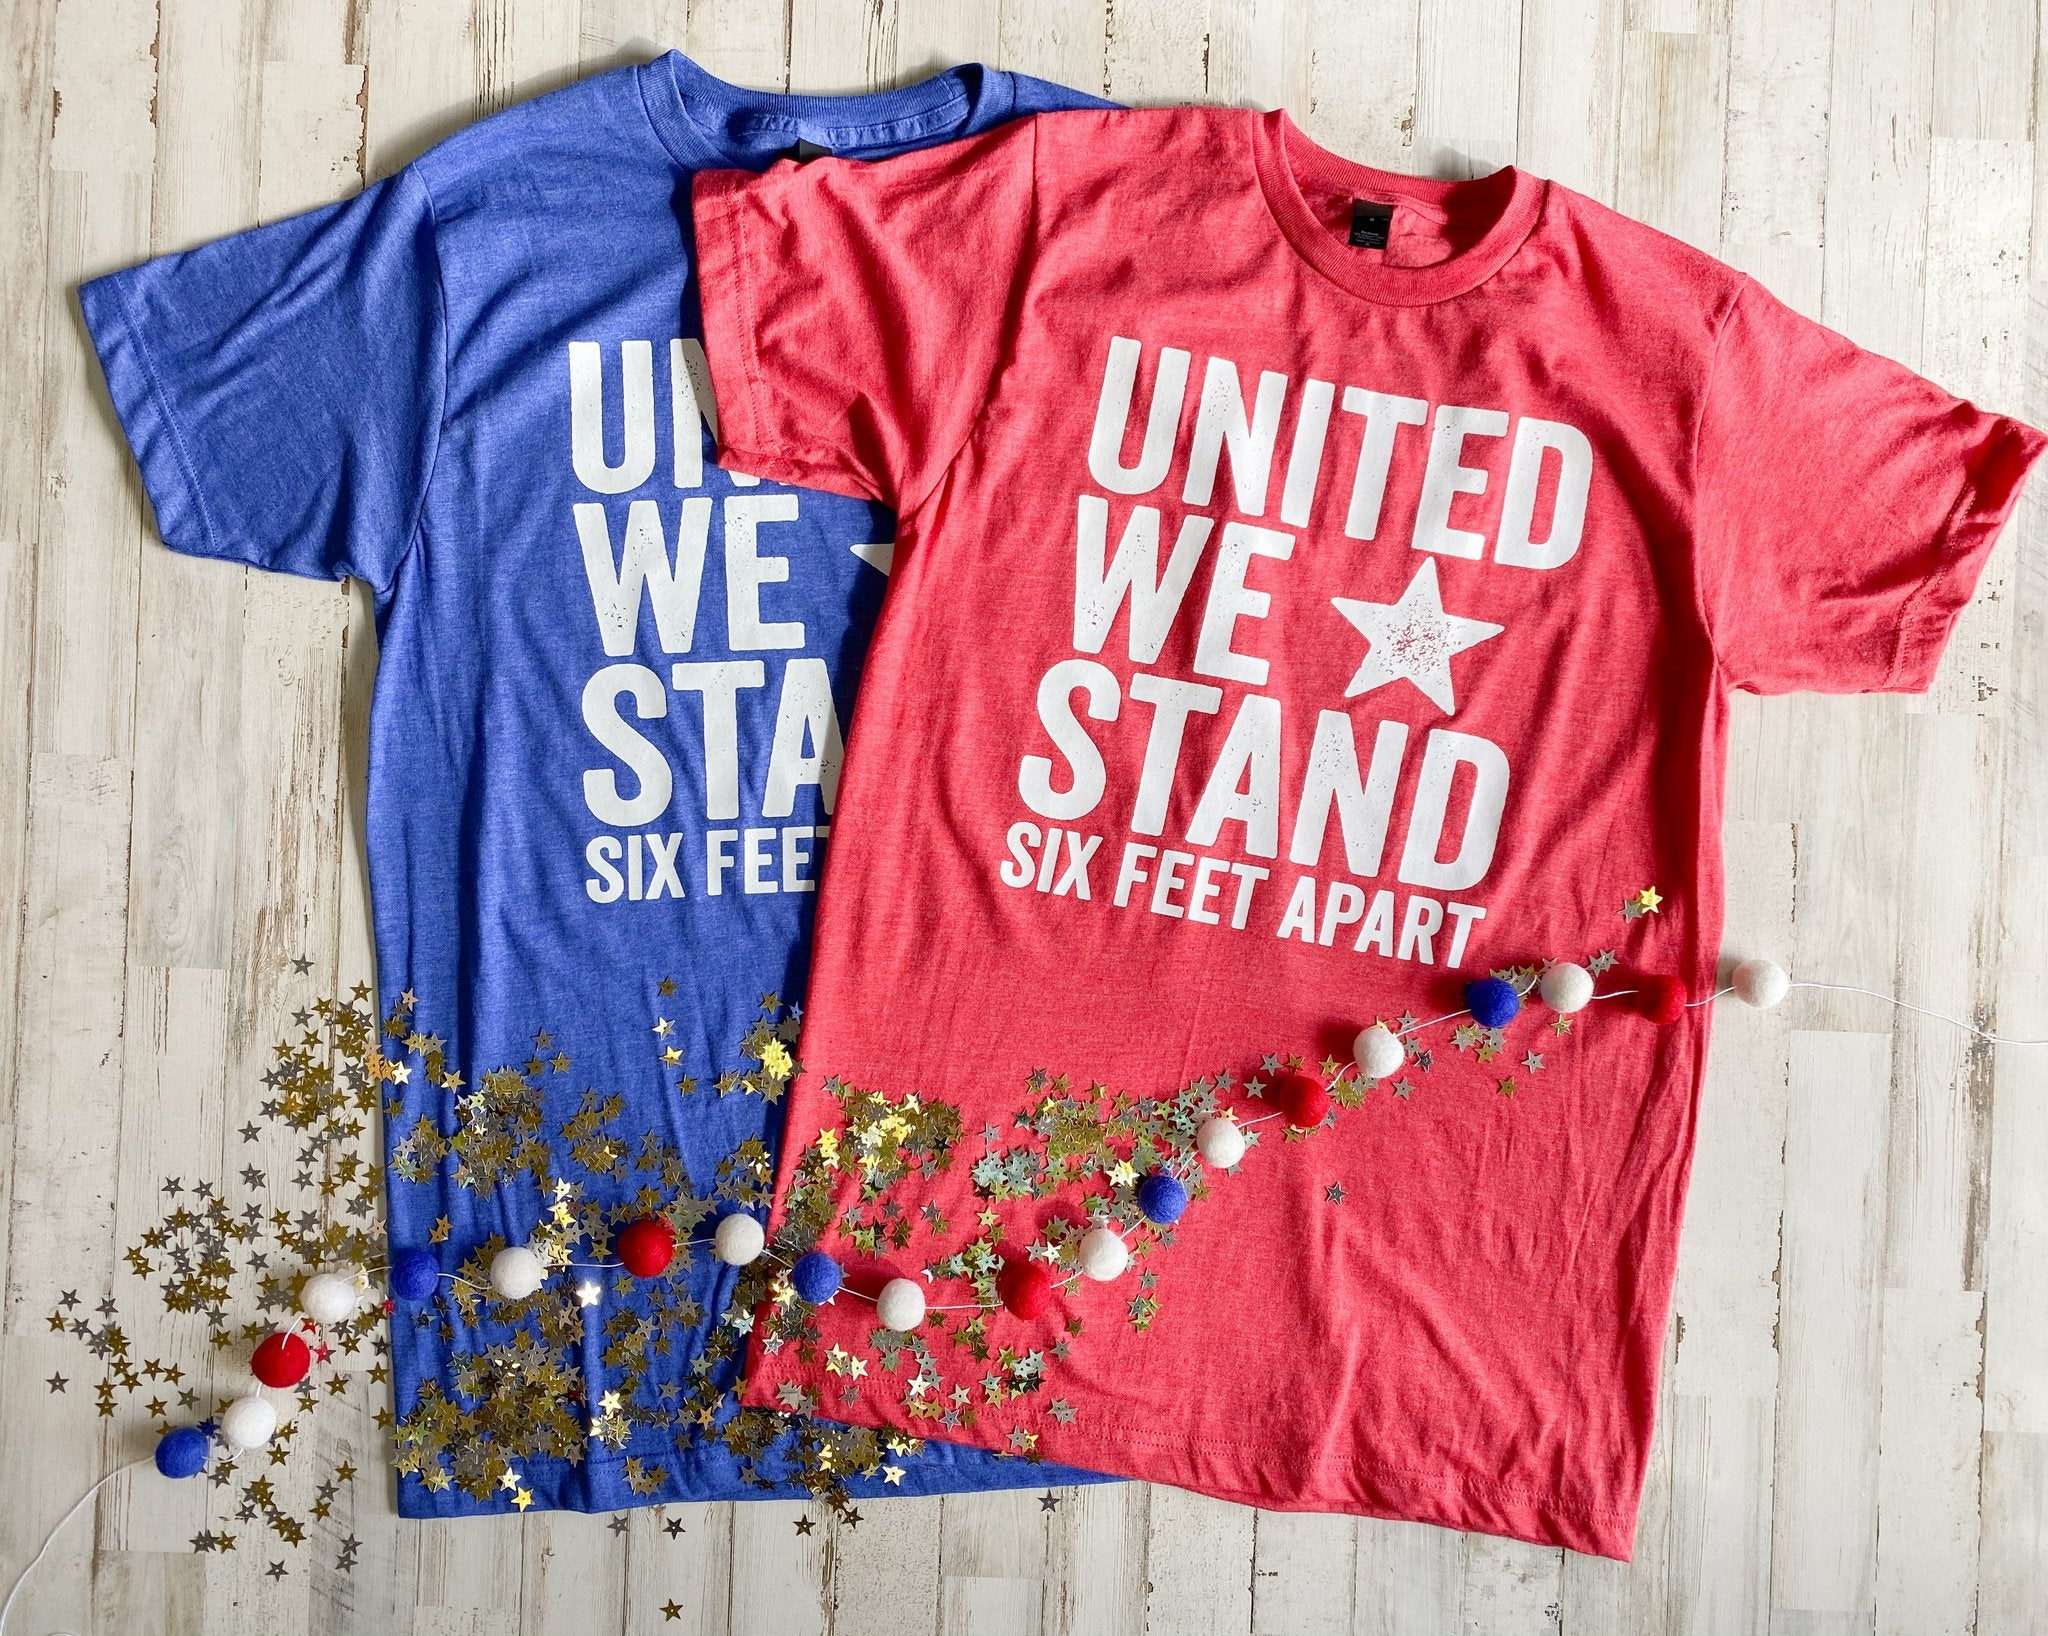 United We Stand Six Feet Apart Tee